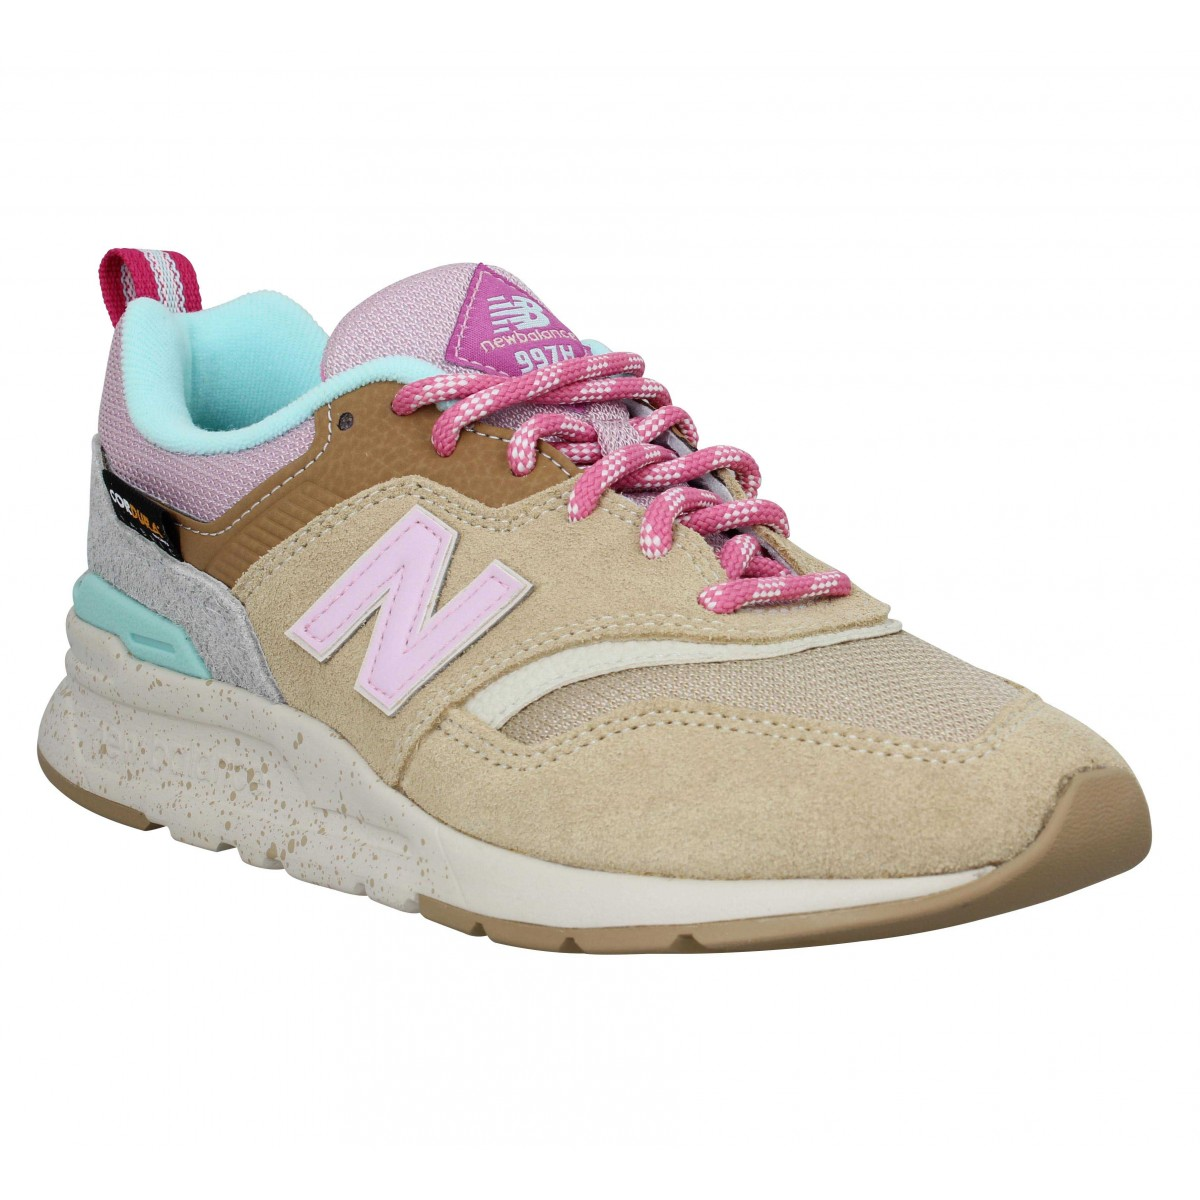 Baskets NEW BALANCE 997 velours toile Femme Tan